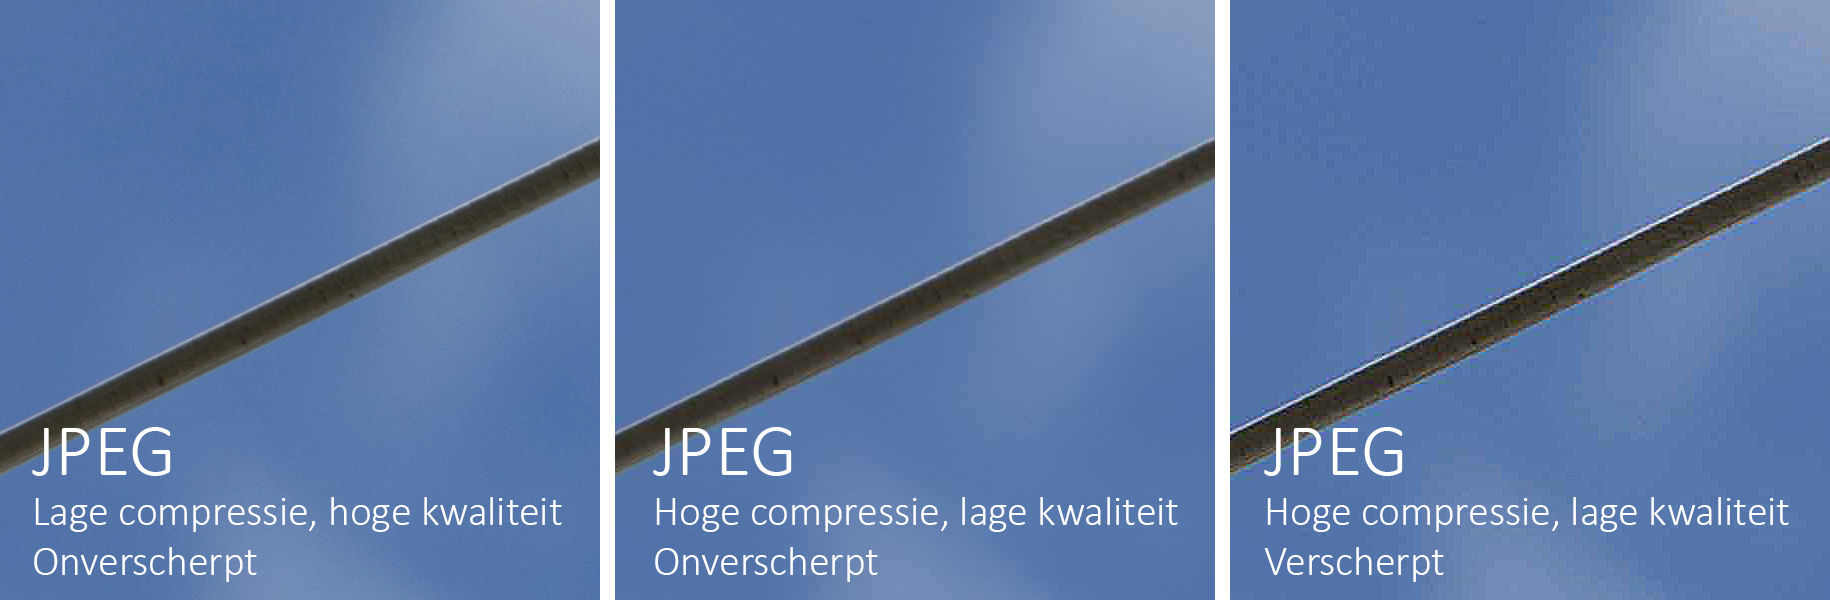 jpeg-verscherping